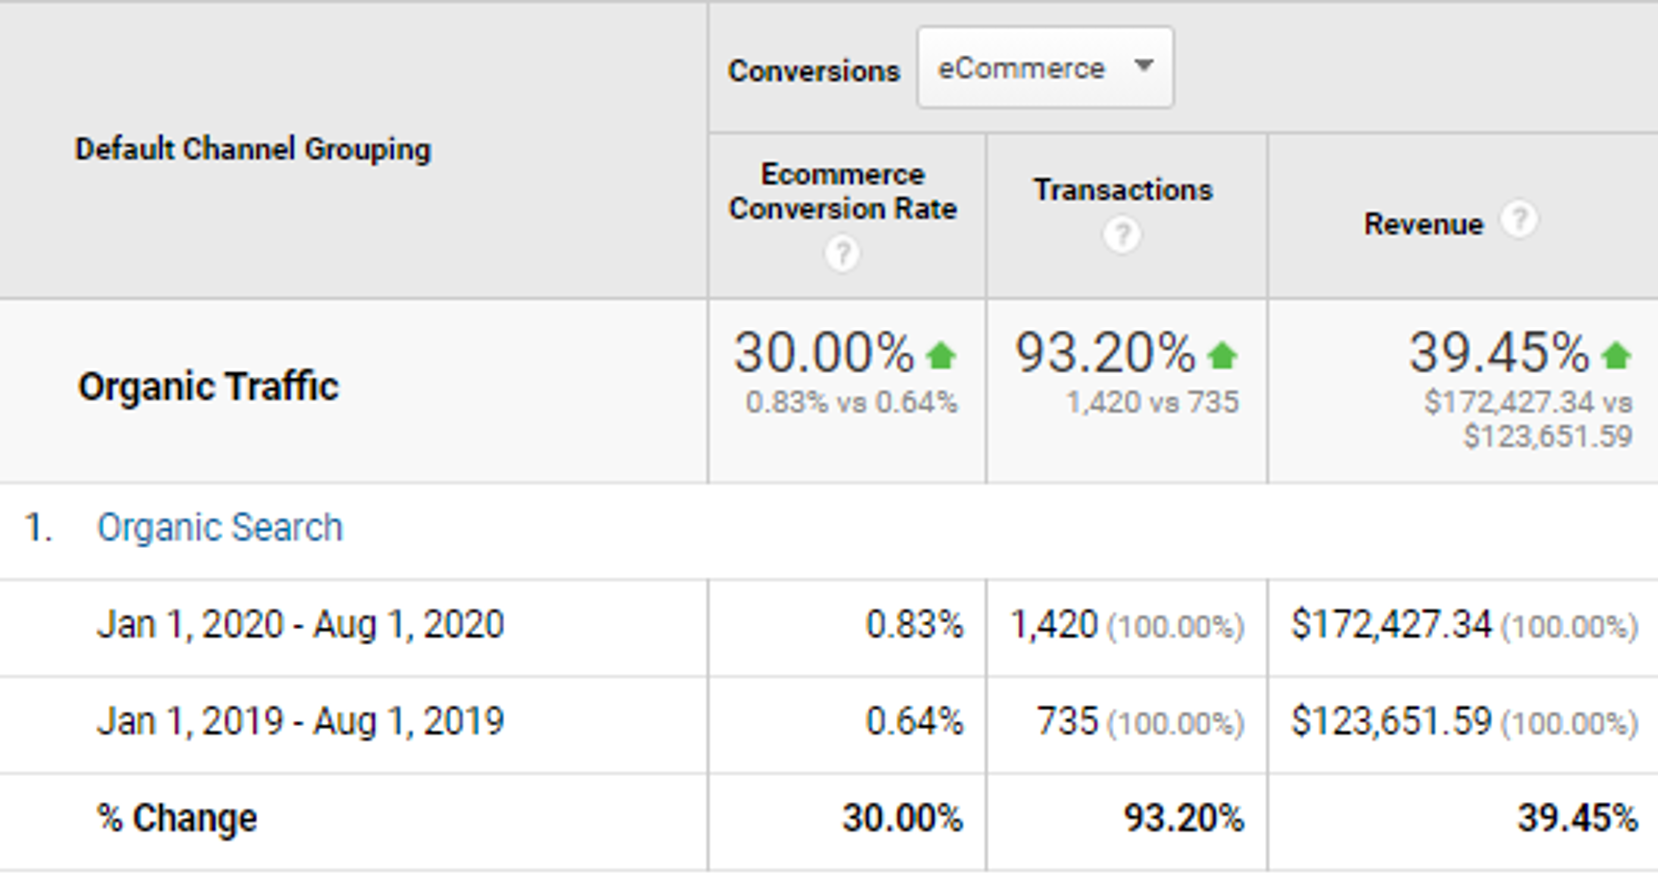 organic traffic increased by 30%